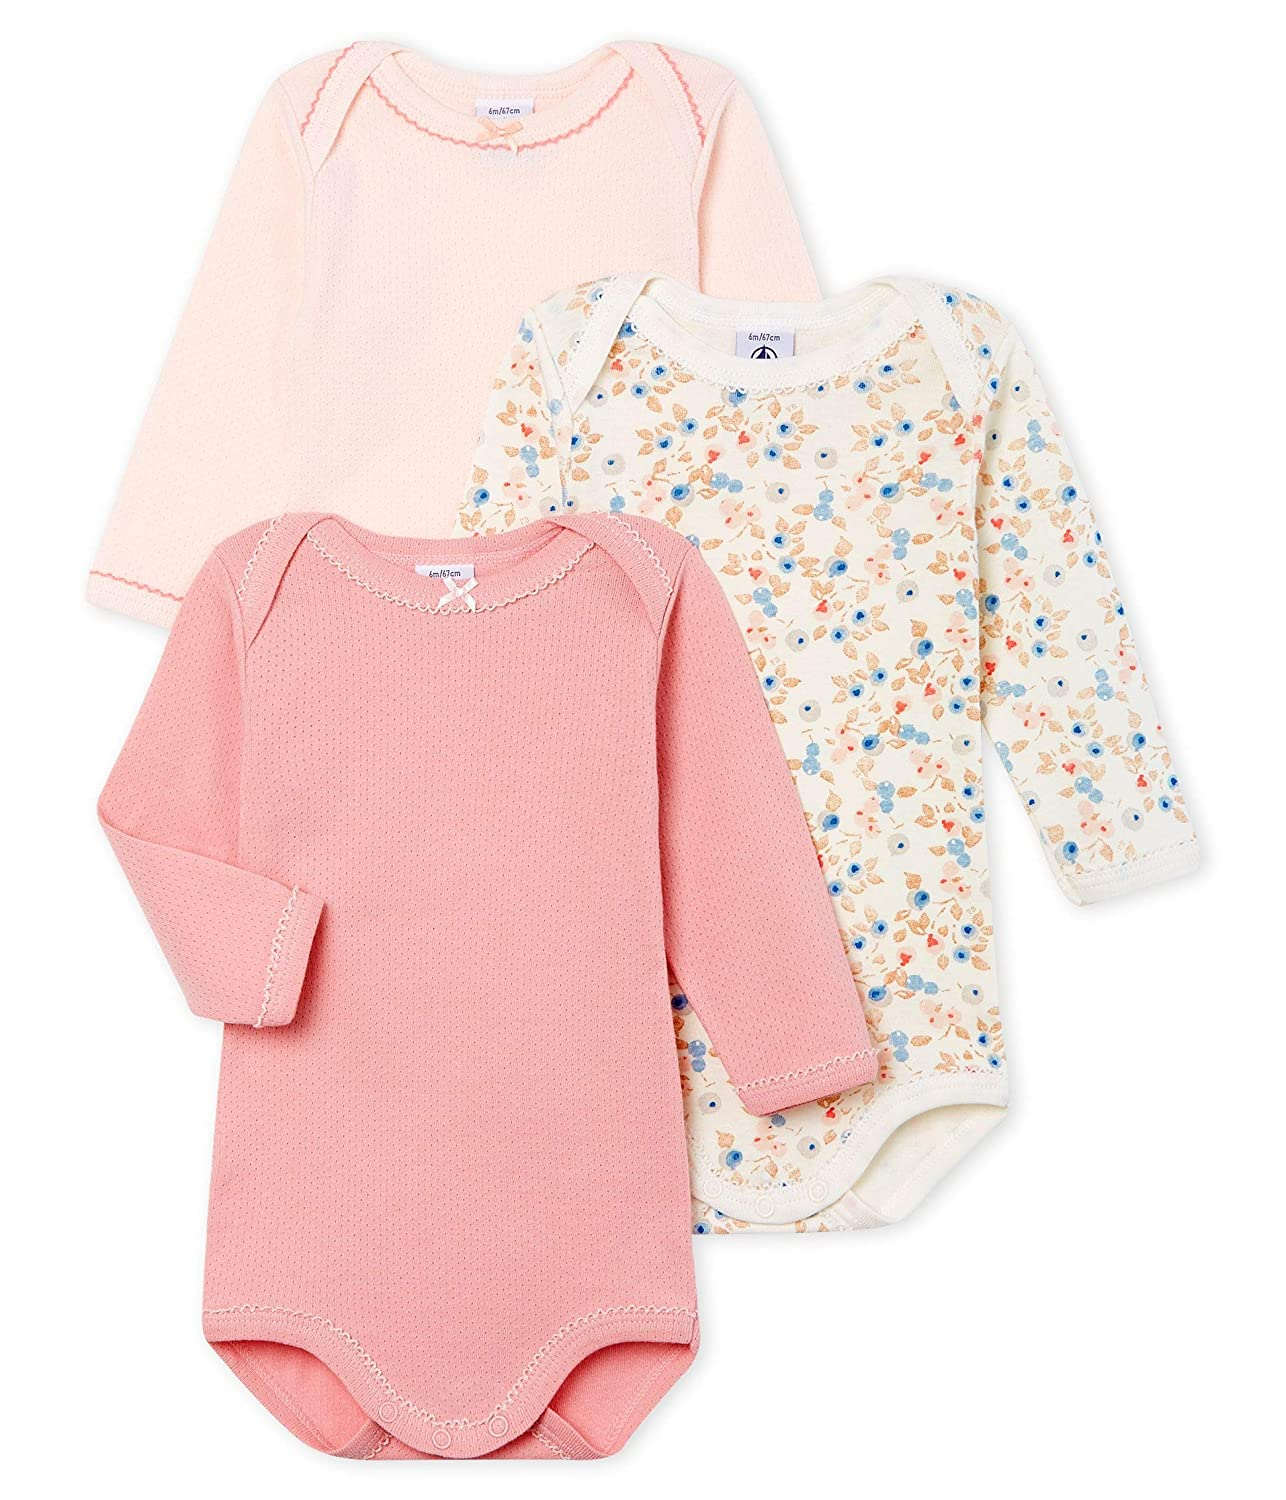 3-Piece Set Sizes 3-36//M Style 49950 Petit Bateau Baby Girls Long-Sleeved Bodysuit